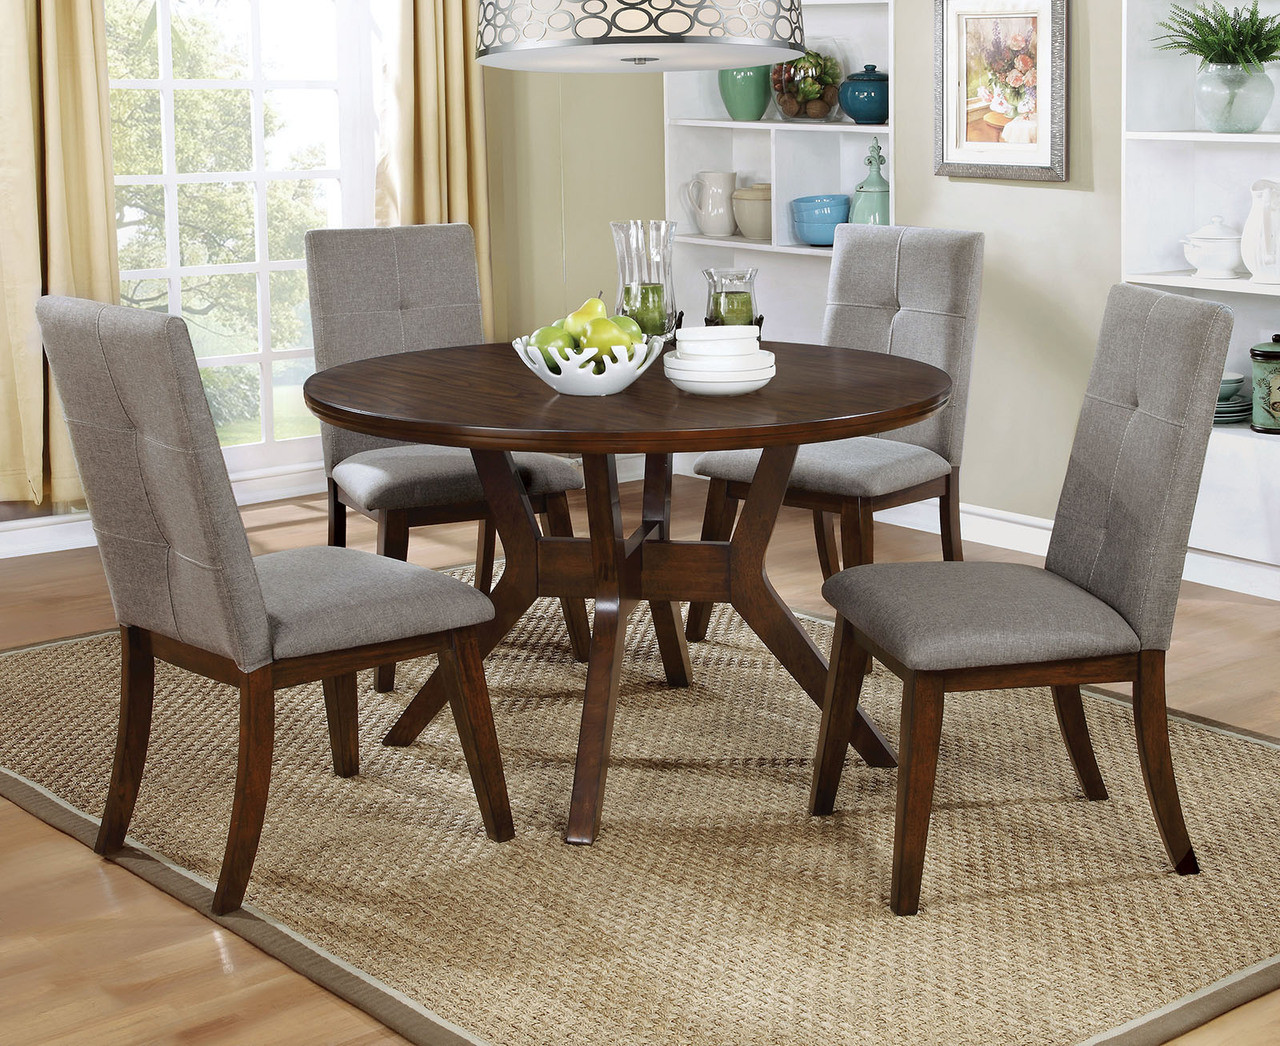 Furniture of America Walnut Round Dining Table Set CM3354RT